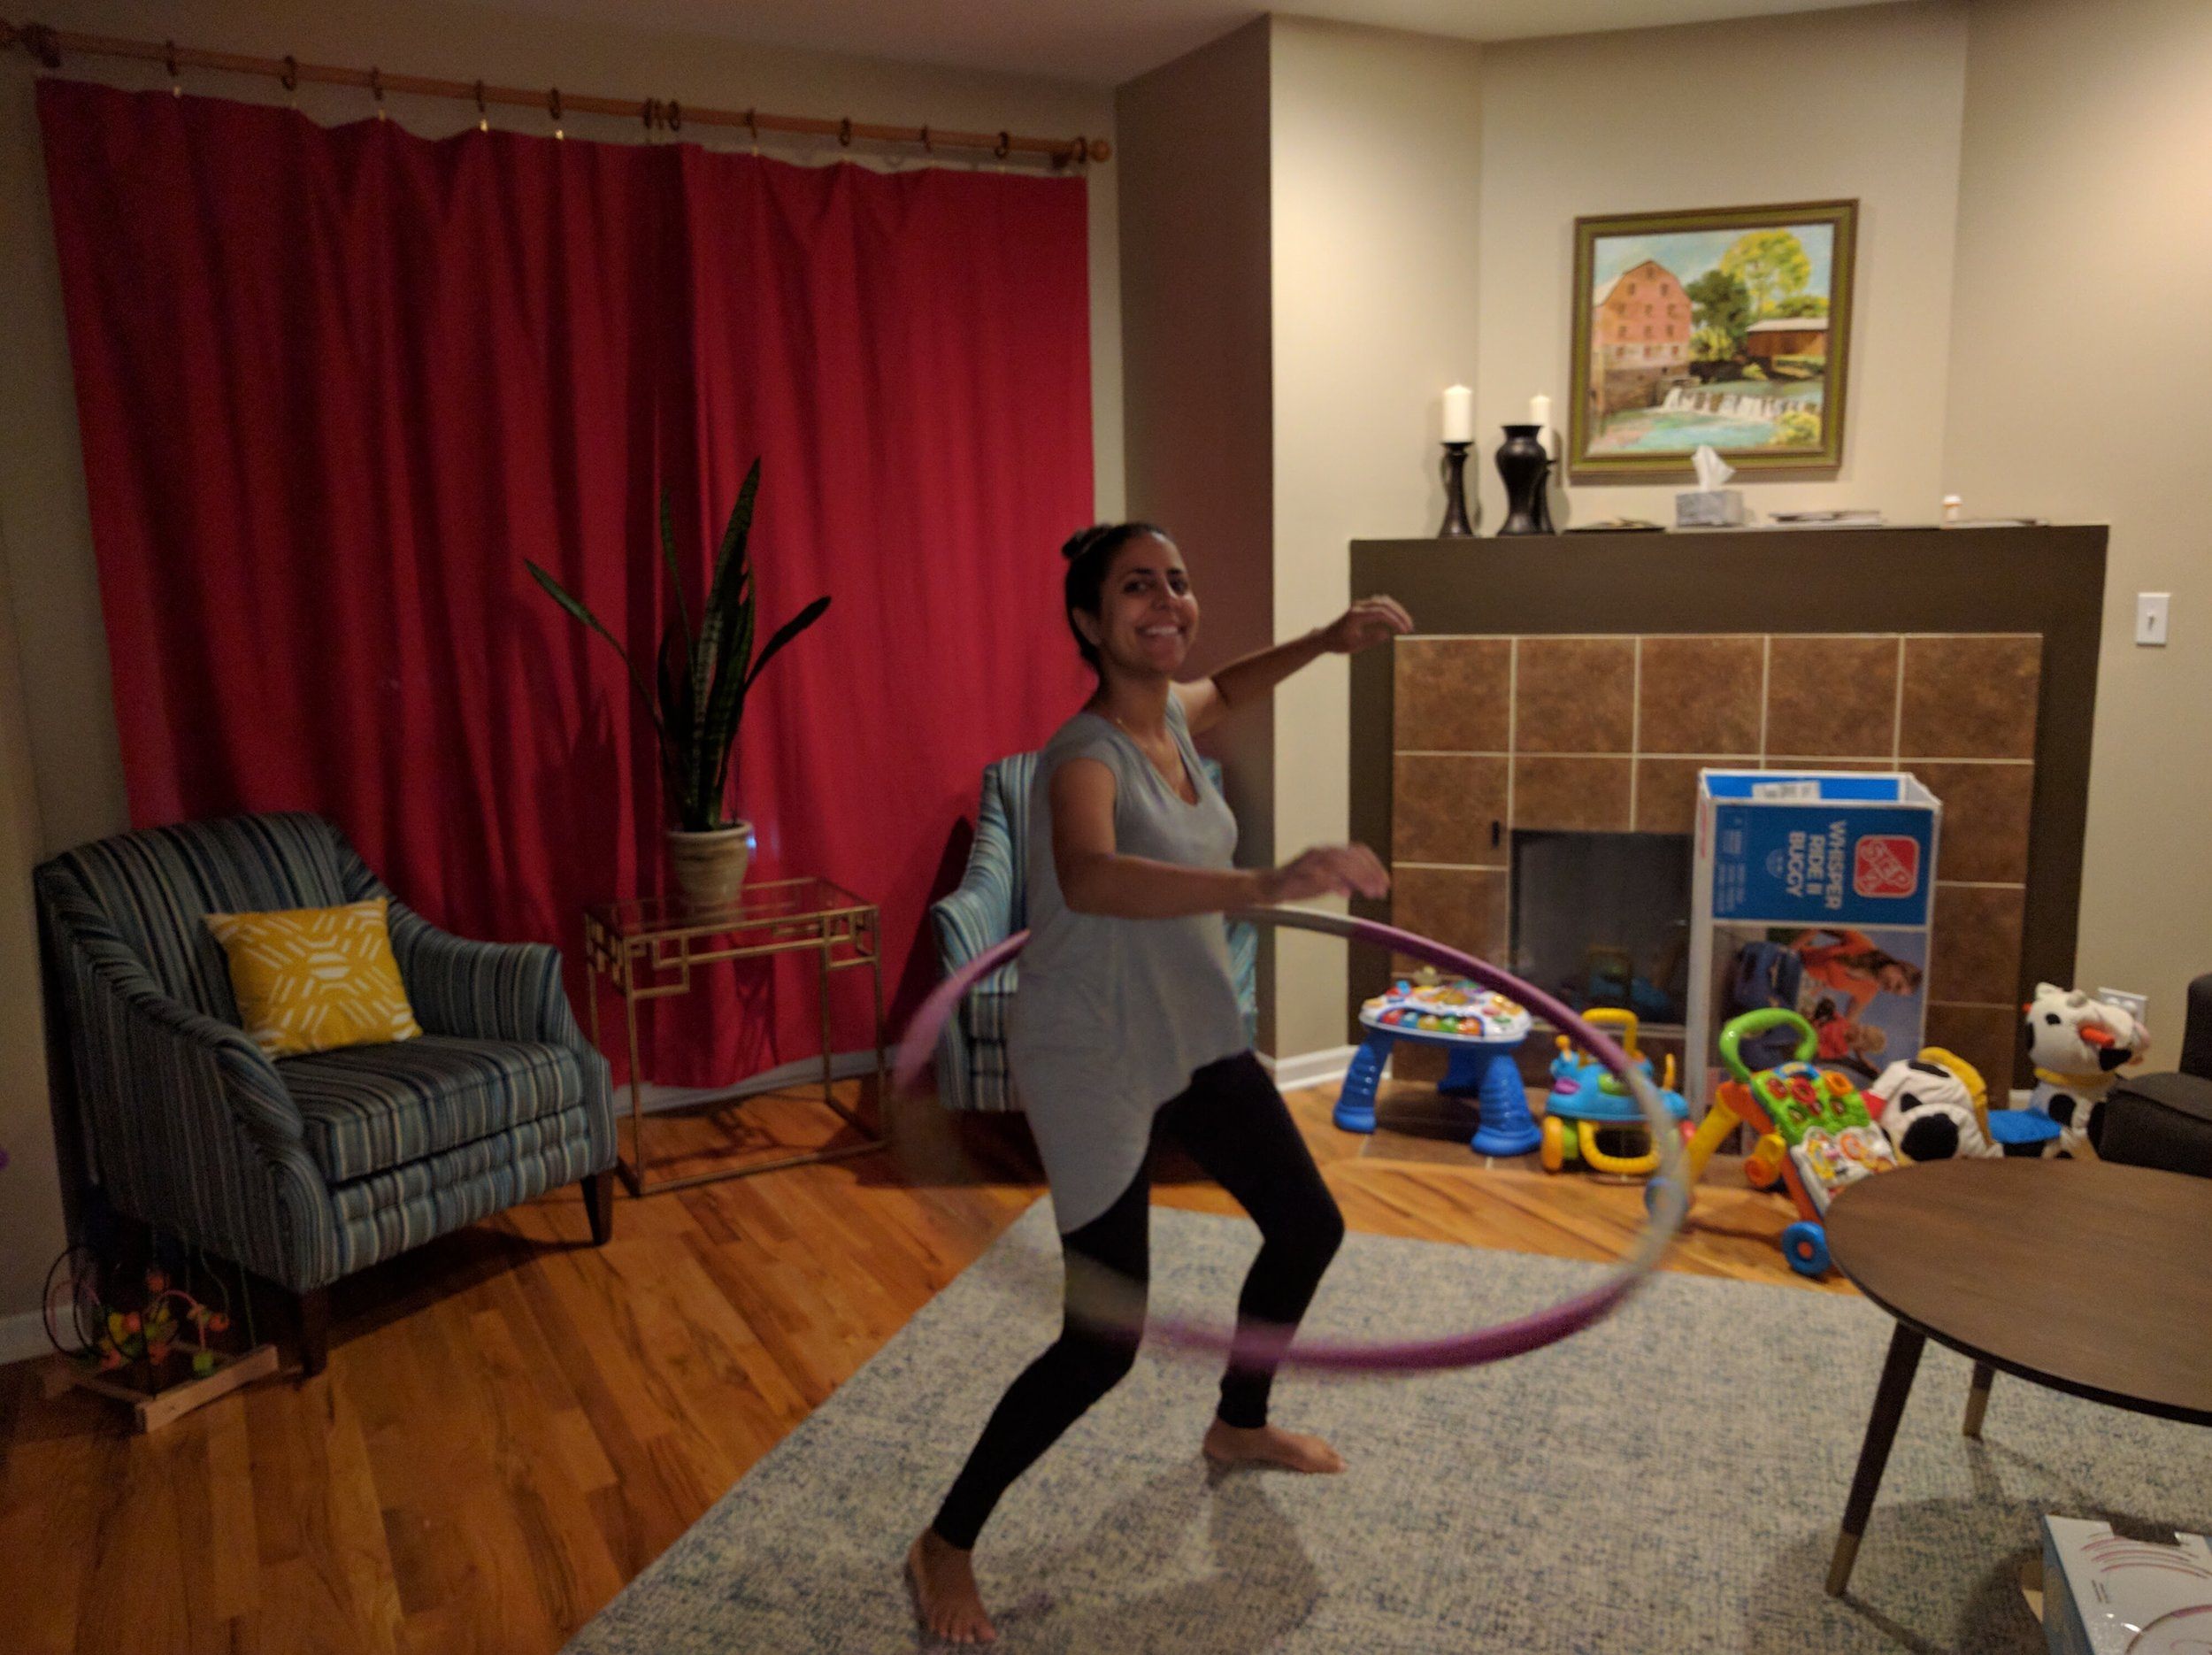 Just an average day with Sheela hula-hooping in the living room!